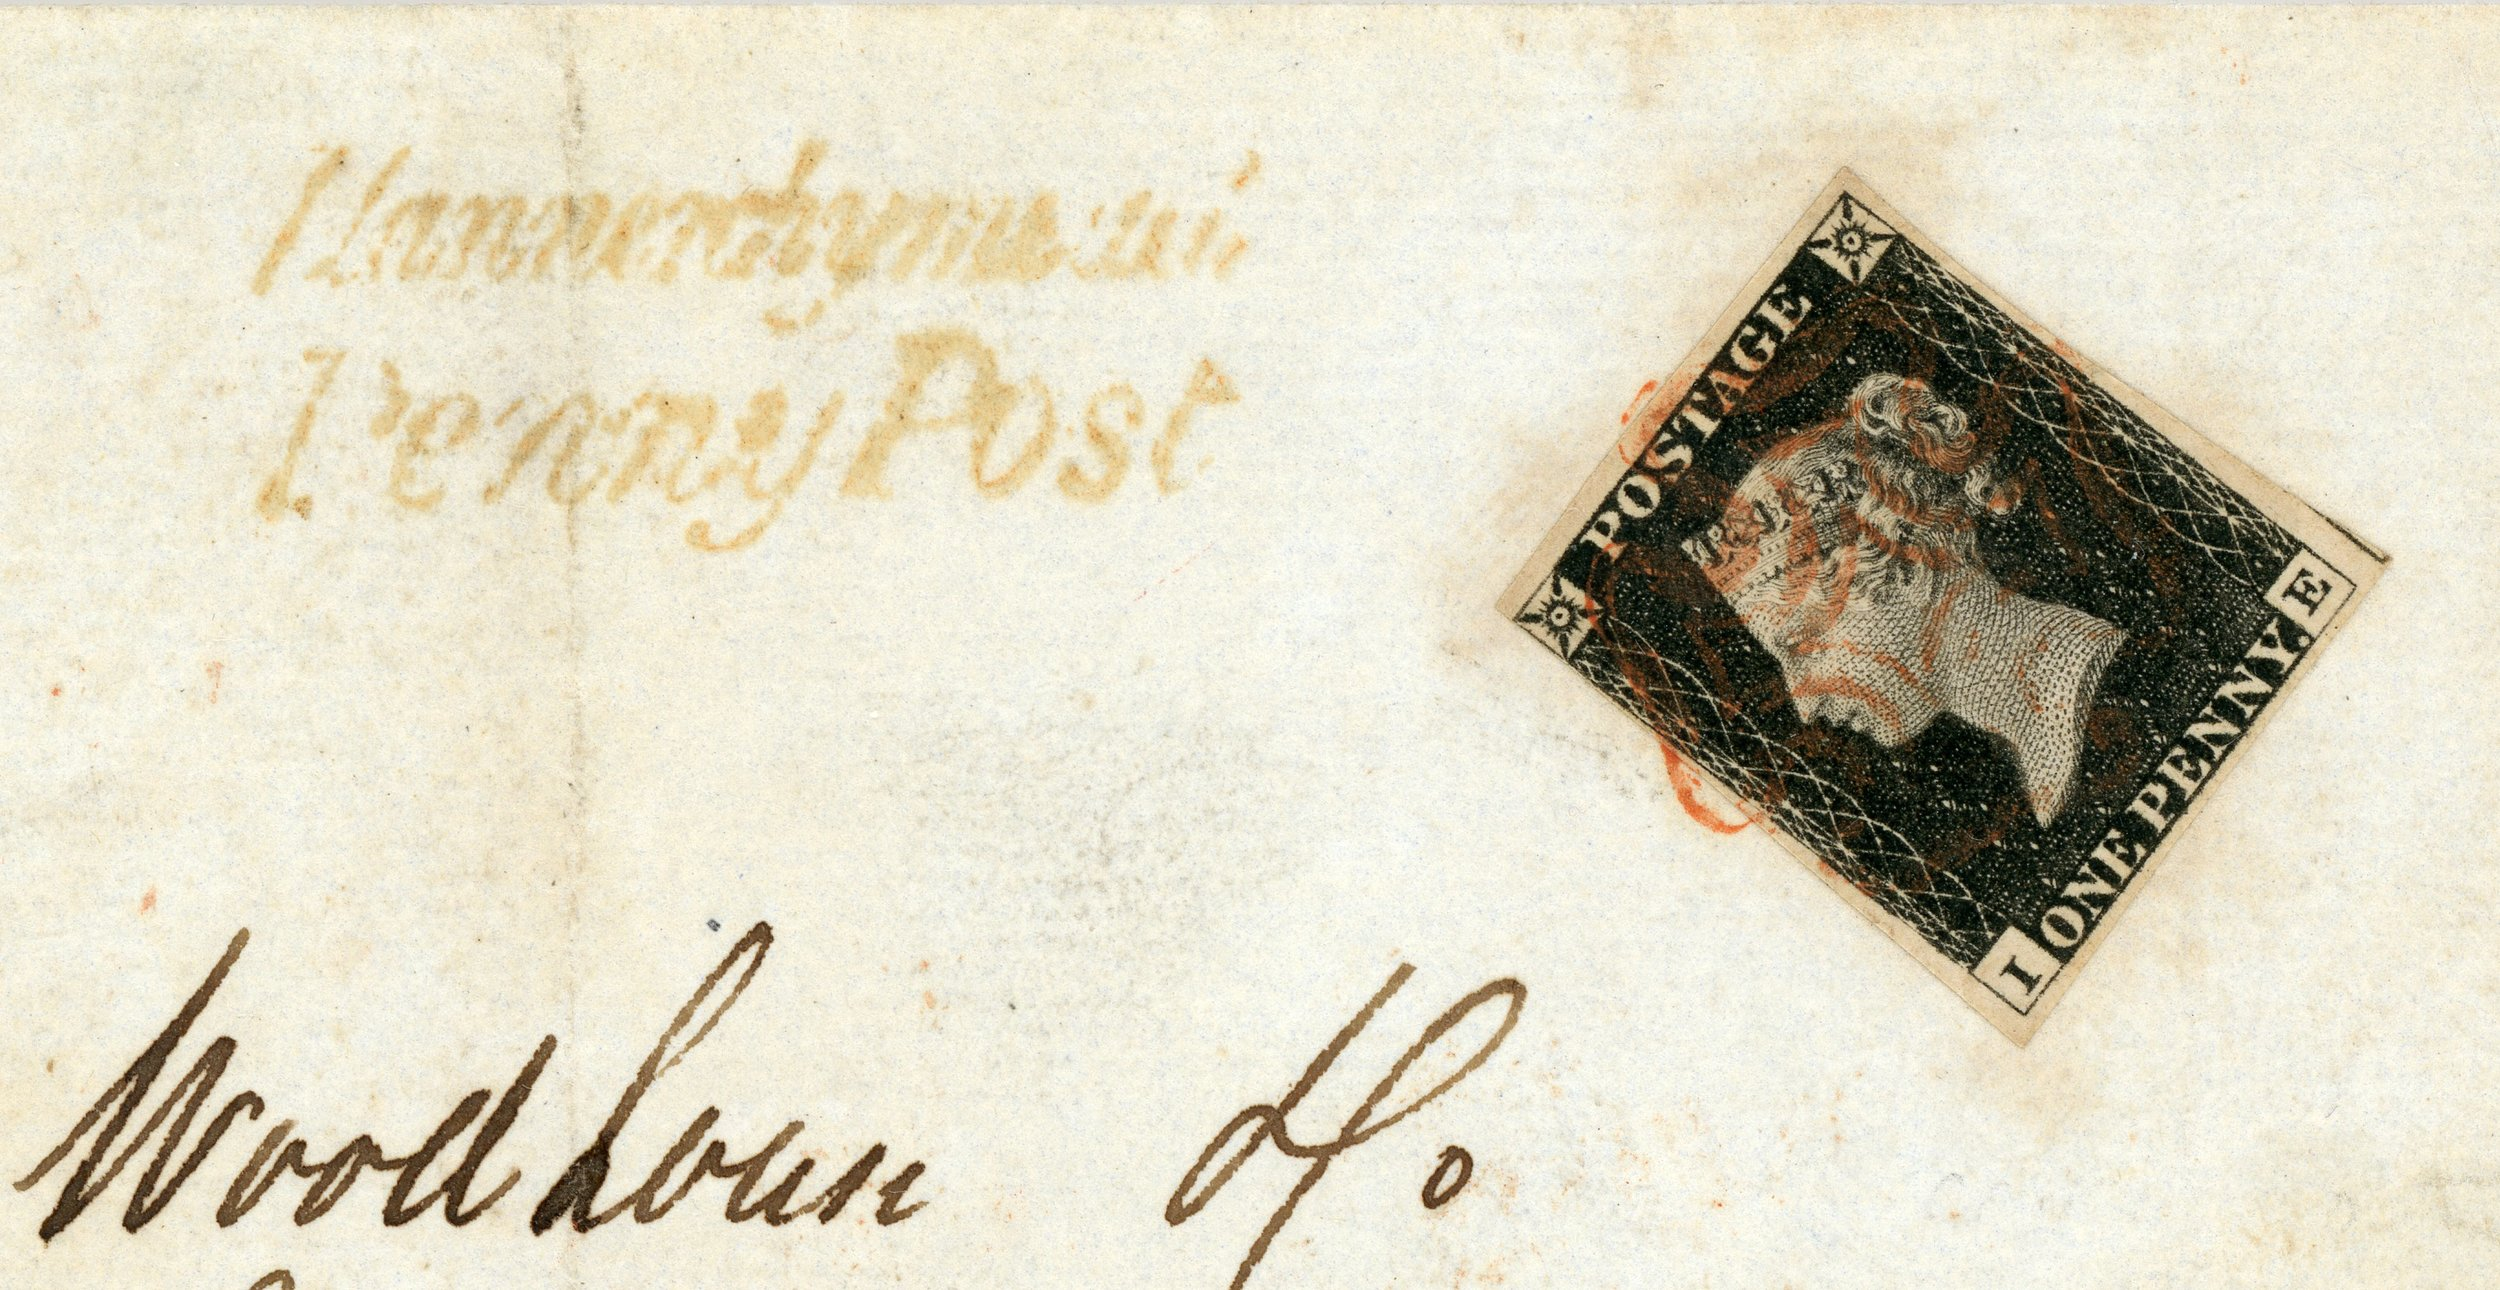 Entire from Llanerchymedd, via Bangor to Liverpool, bearing a 1d black pl 3 cancelled by a red Maltese Cross, and a  Llannerchymedd Penny Post  handstamp in red. Backstamped BANGOR darc-cds in red (code D),  dated AU 27 1840.